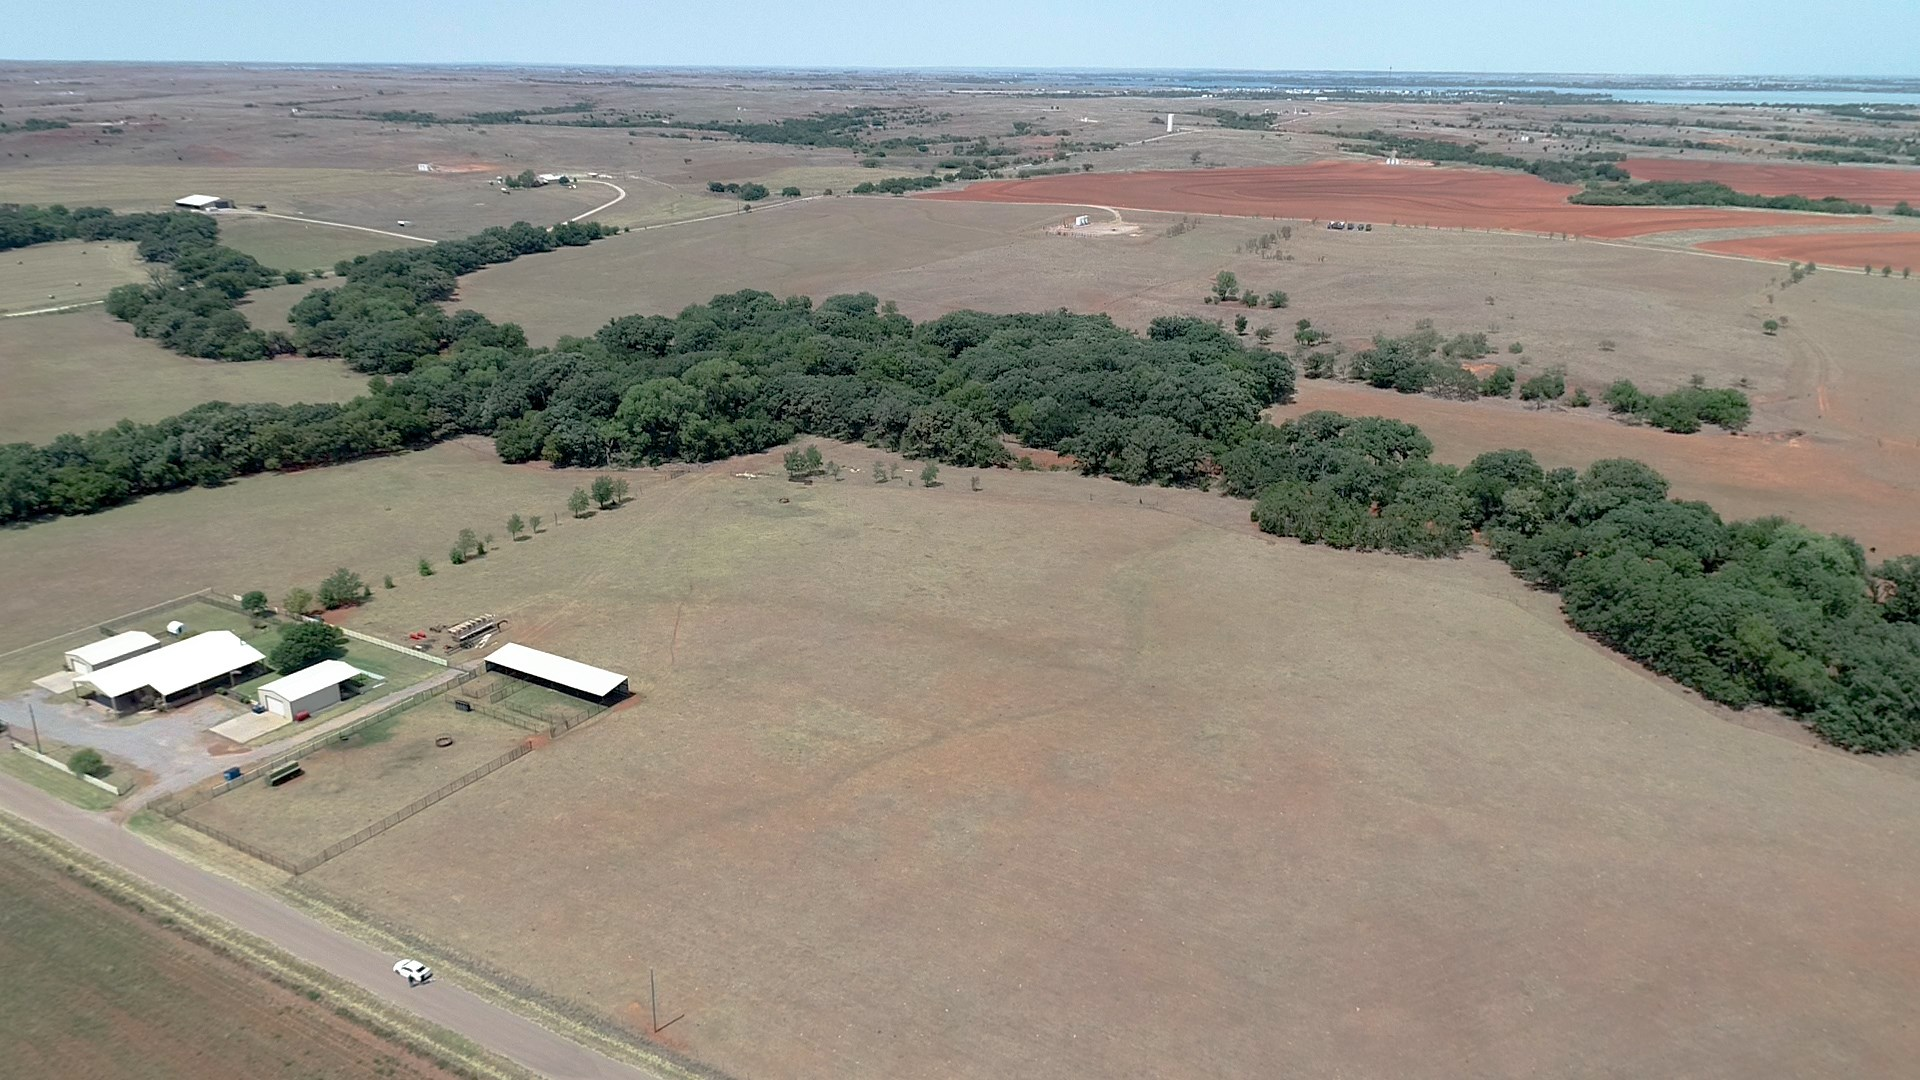 80-Acre Farm, Ranch, Hunting Land, and County Home for Sale